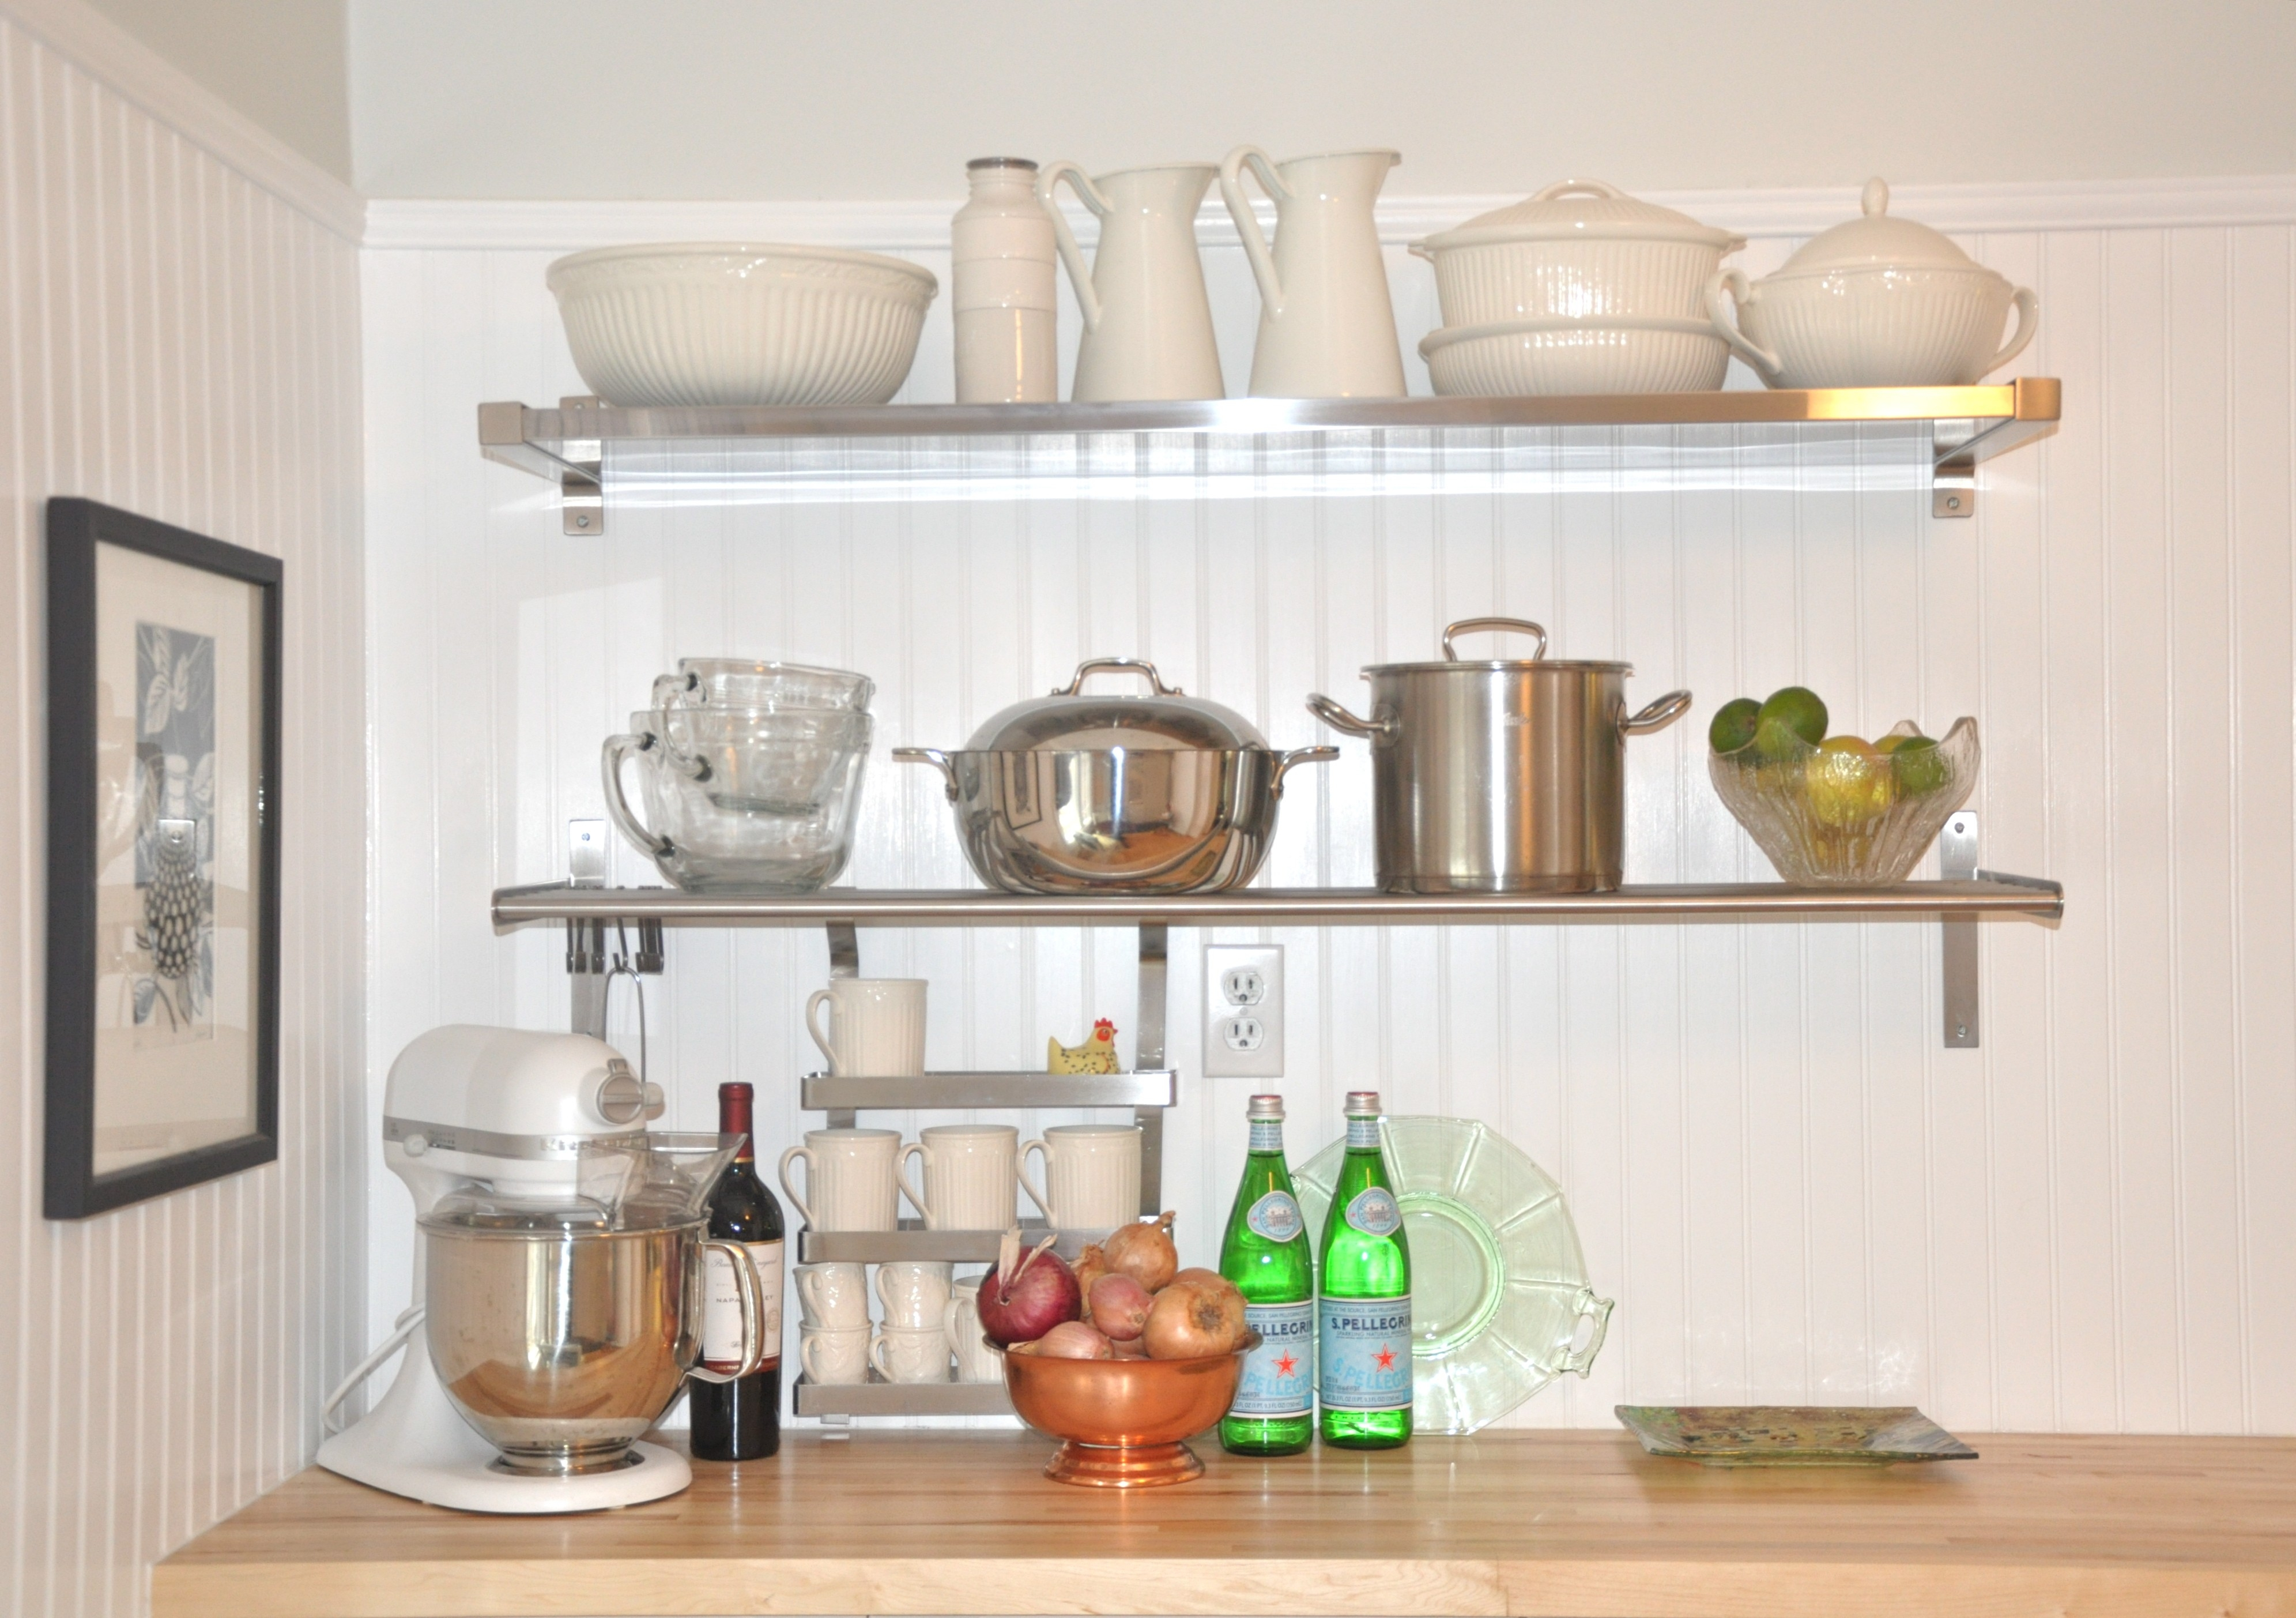 Kitchen Design Chrome Faucet Rustic Wooden Open Kitchen Shelving In Glass Kitchen Shelves (Image 6 of 15)